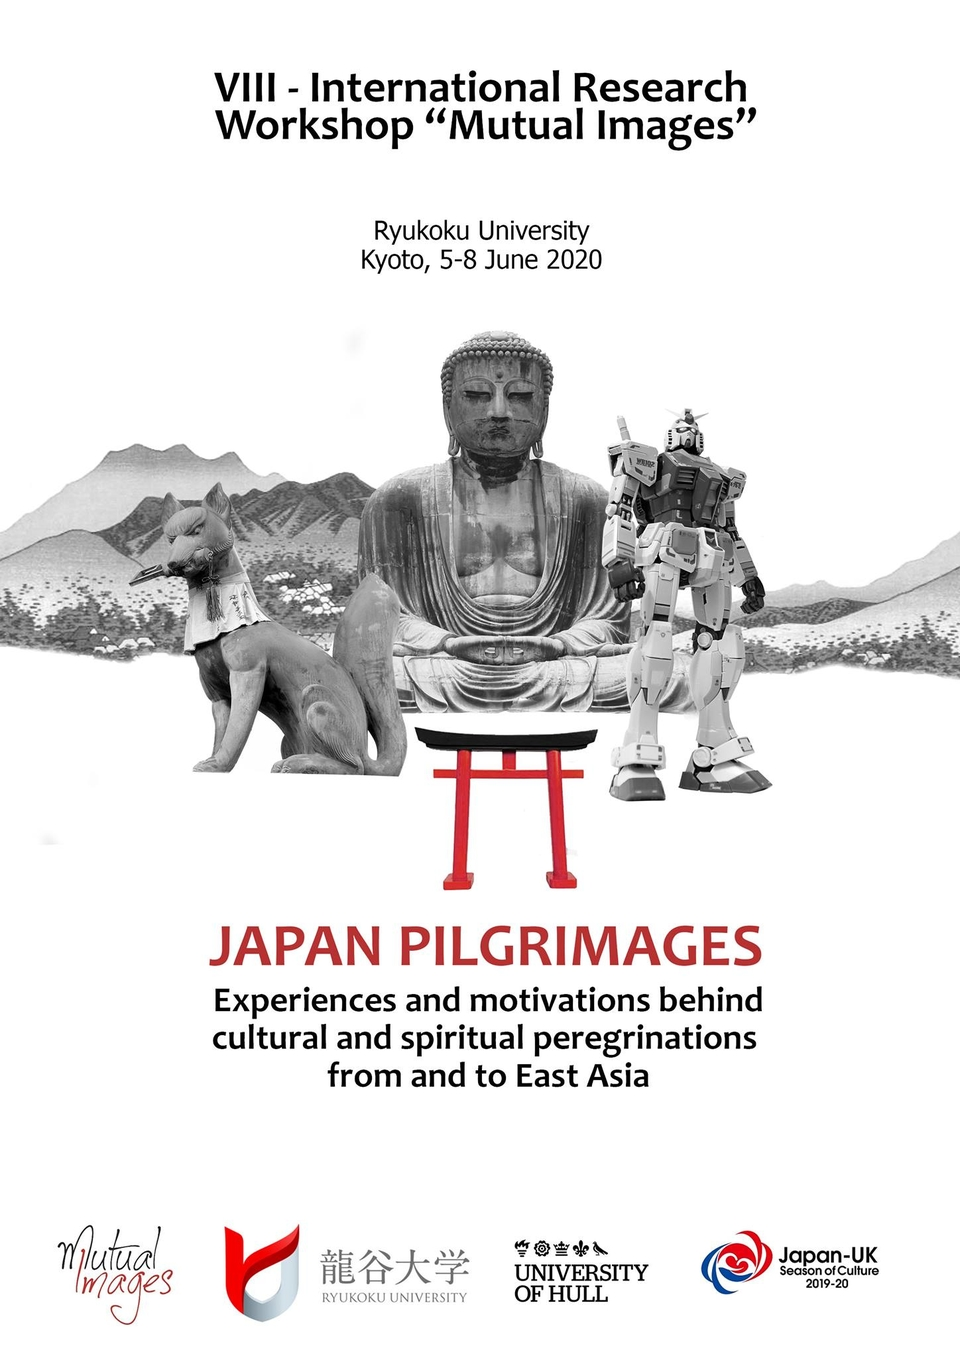 Poster, Japanese Pilgrimages: Experiences and Motivations Behind Cultural, Spiritual and Religious Peregrinations to and from East Asia